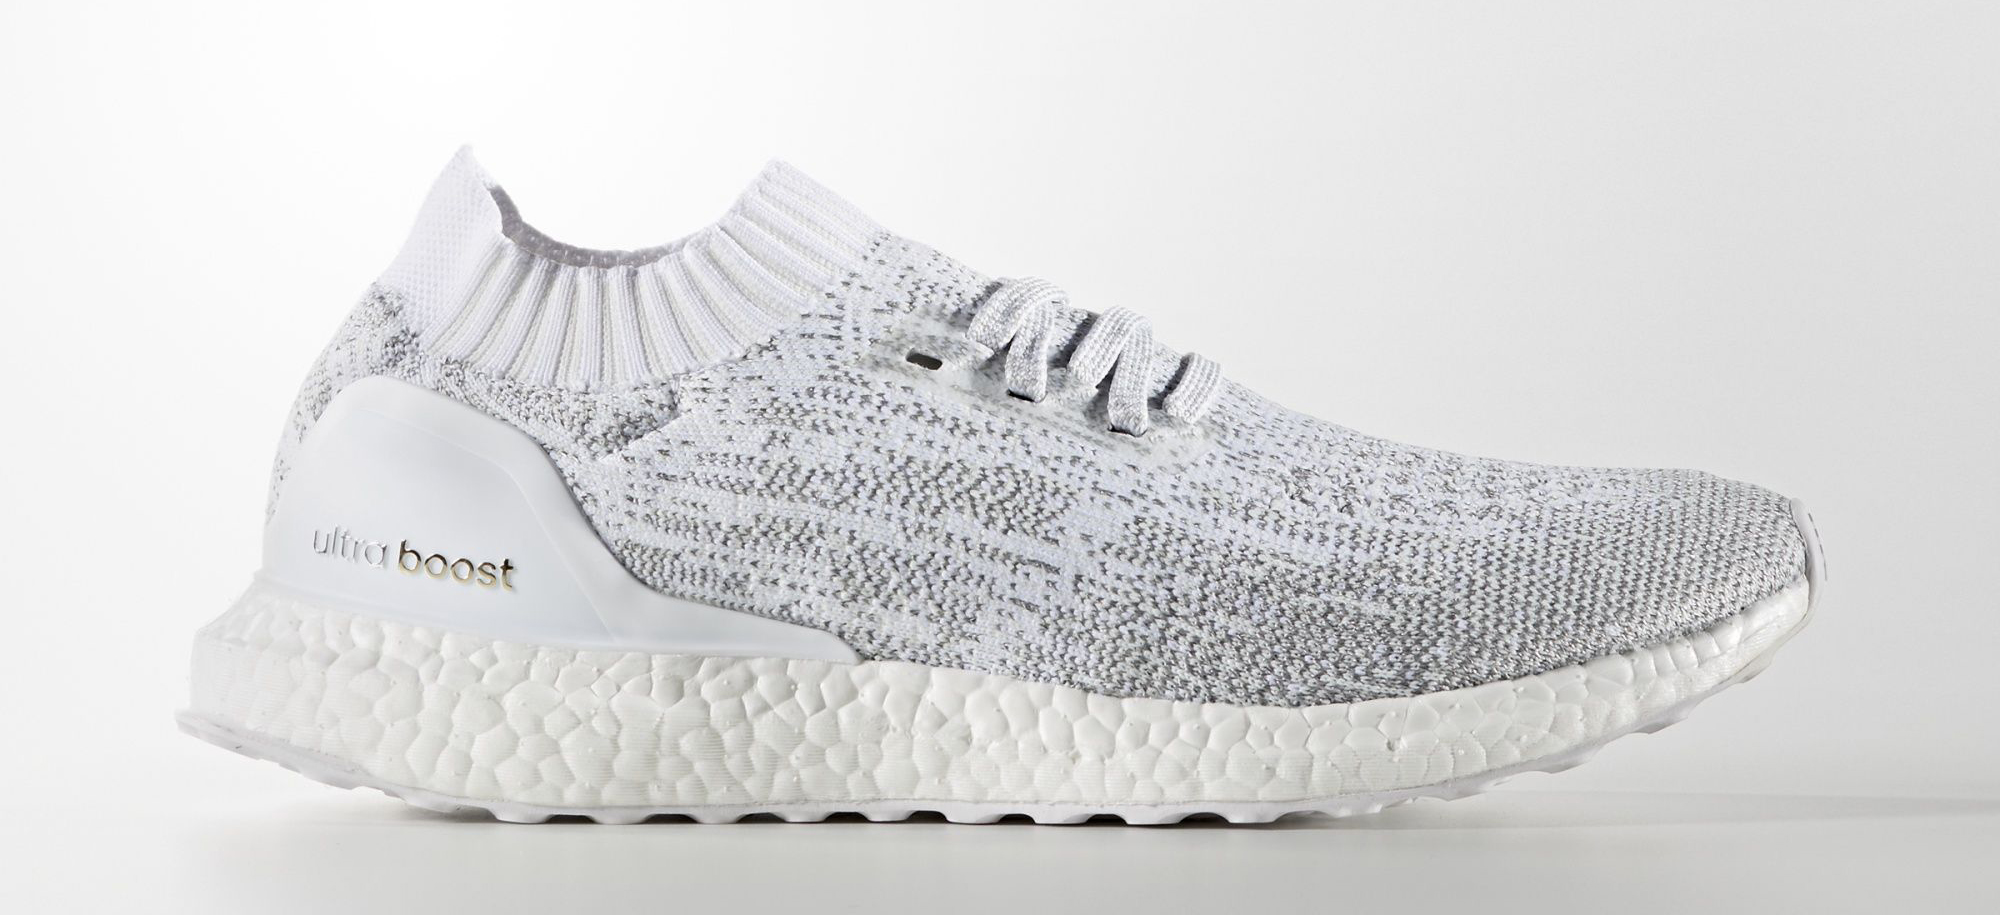 premium selection 1e1ff 730b1 Image via Adidas Adidas Ultra Boost Uncaged White Reflective